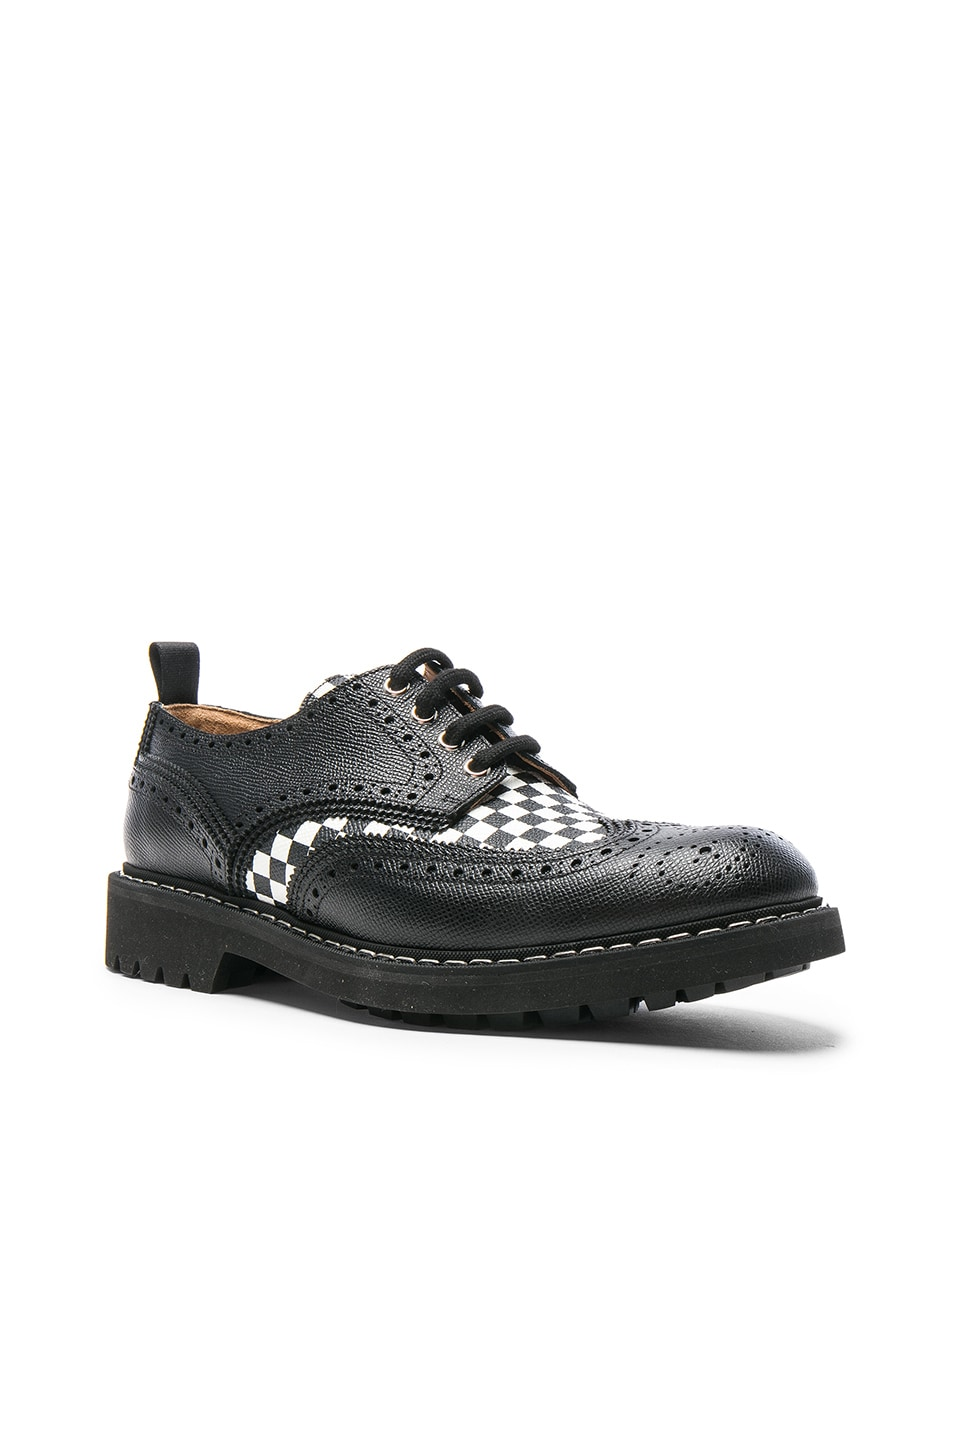 Image 1 of Givenchy Checkerboard Leather Dress Shoes in Black & White